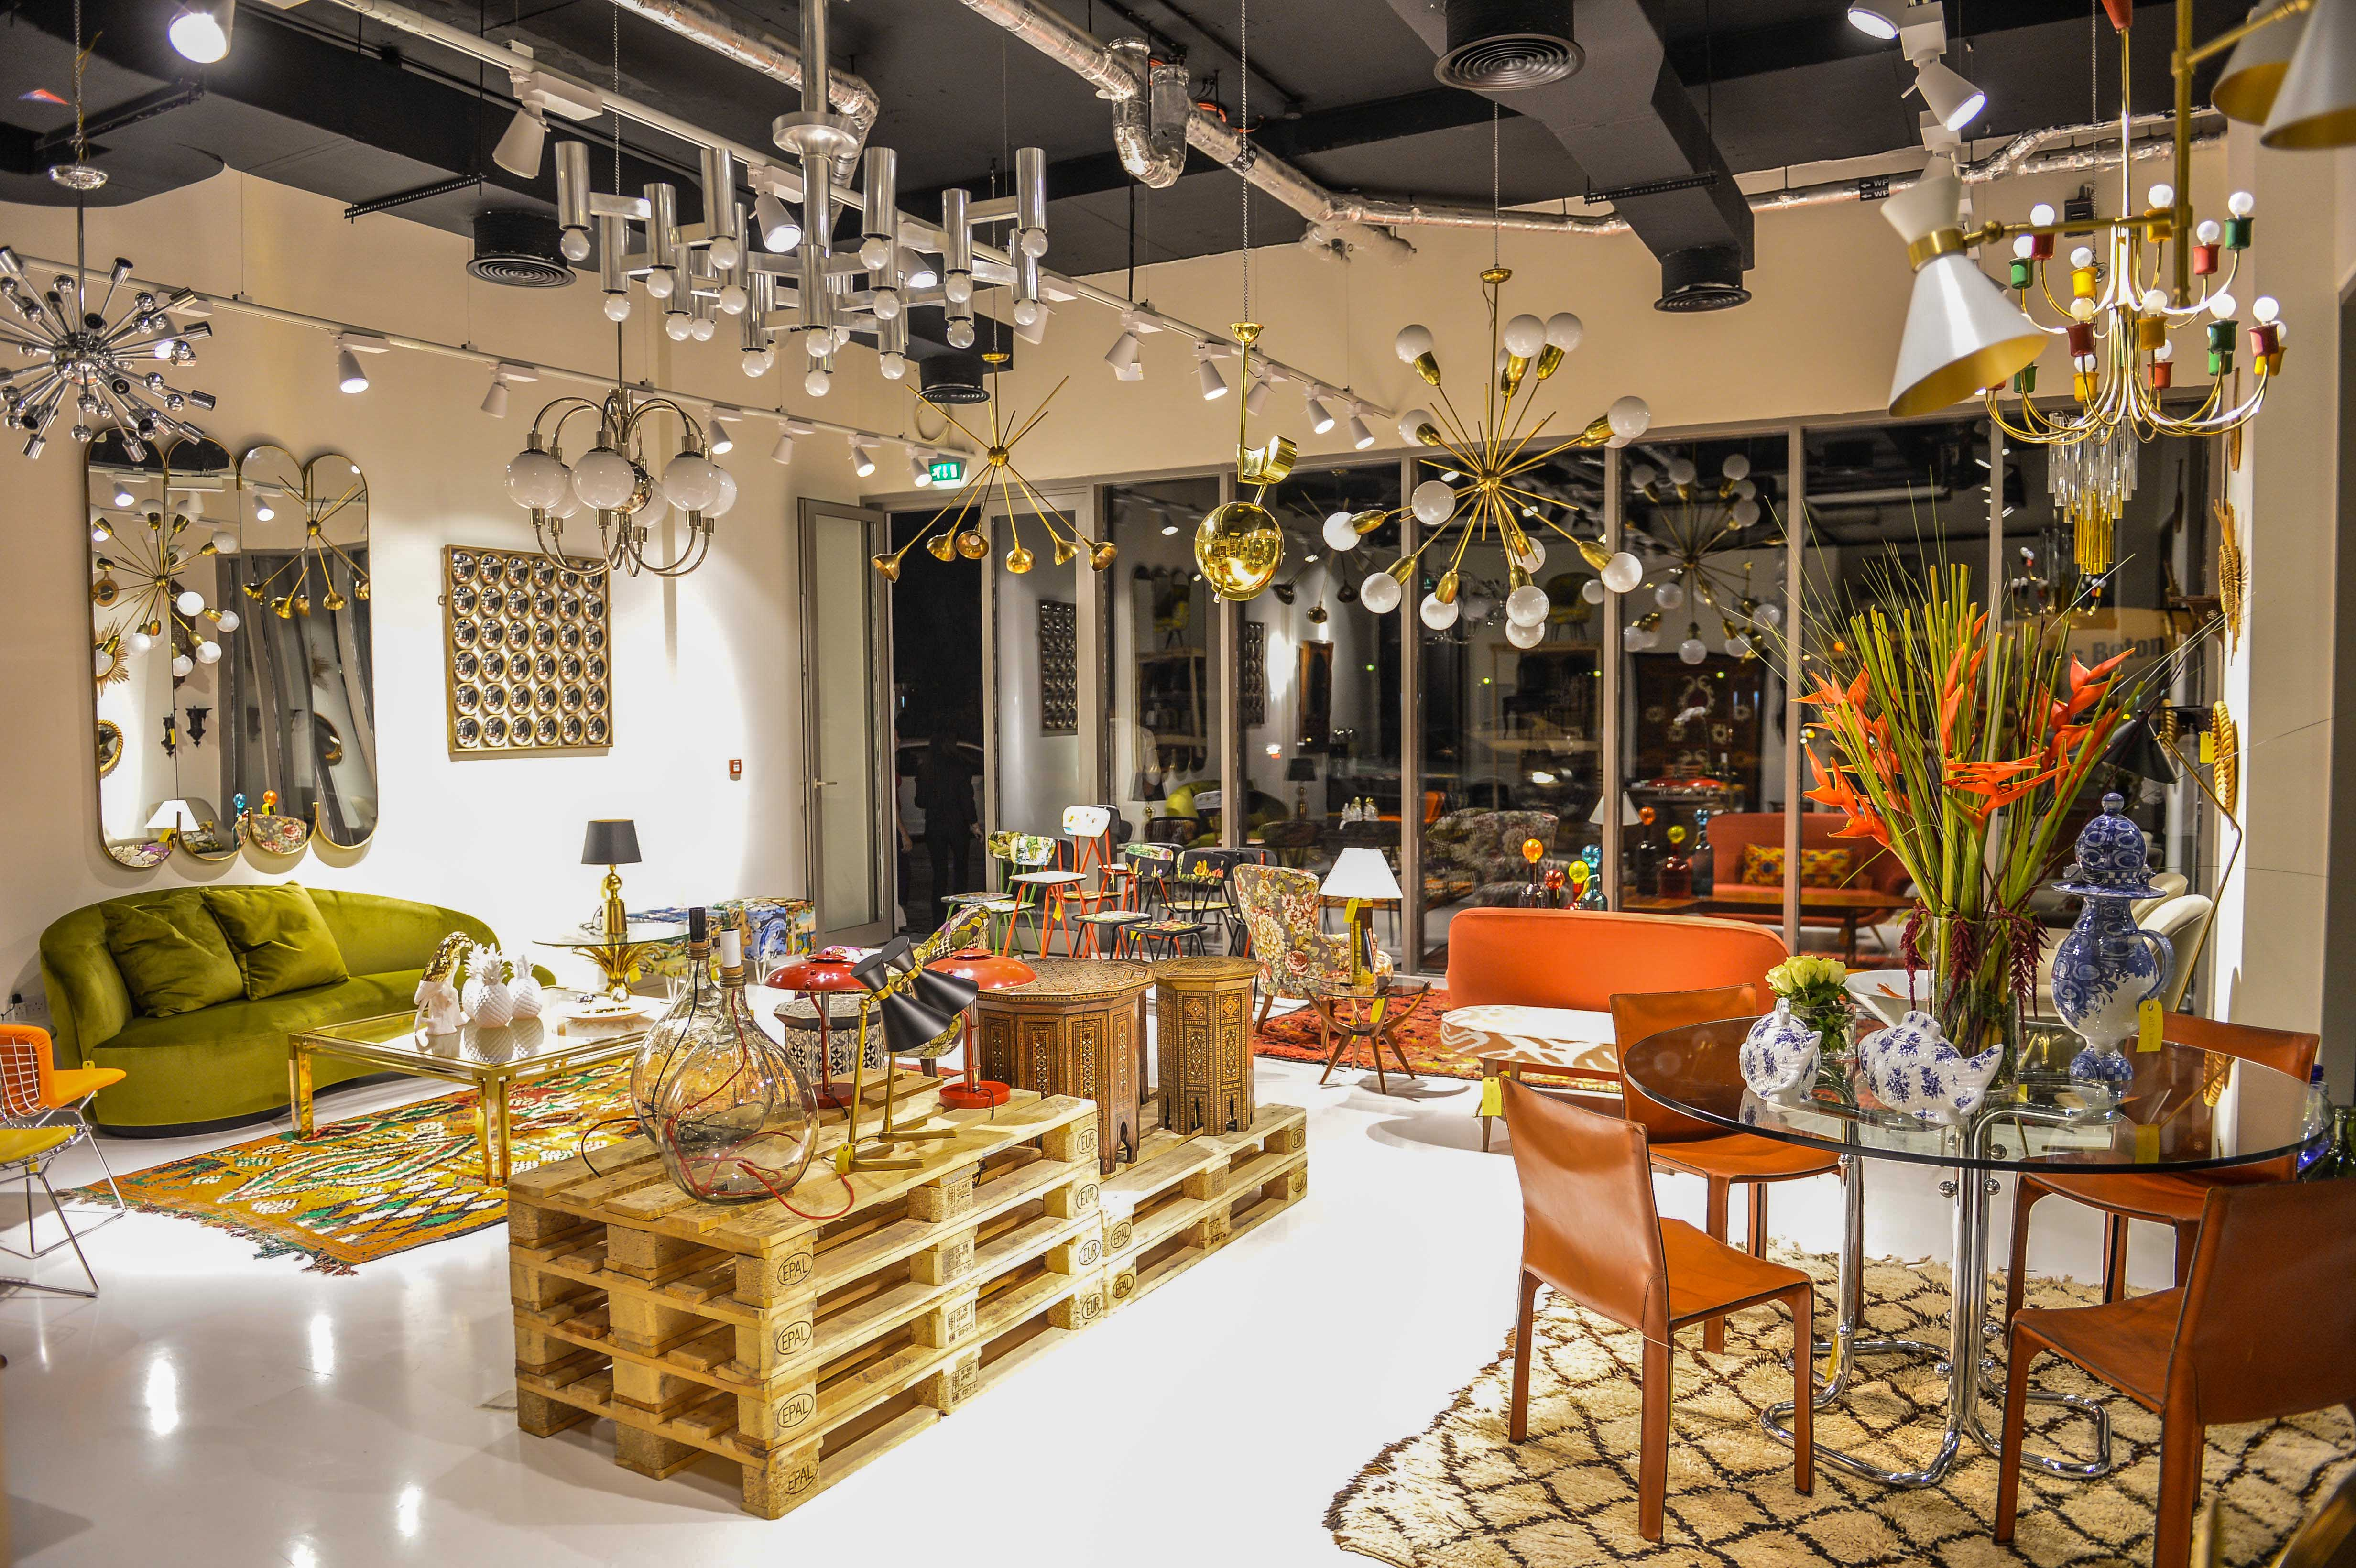 The Odd Piece The First Home Furnishing Boutique Beauty And Fashion Dubai